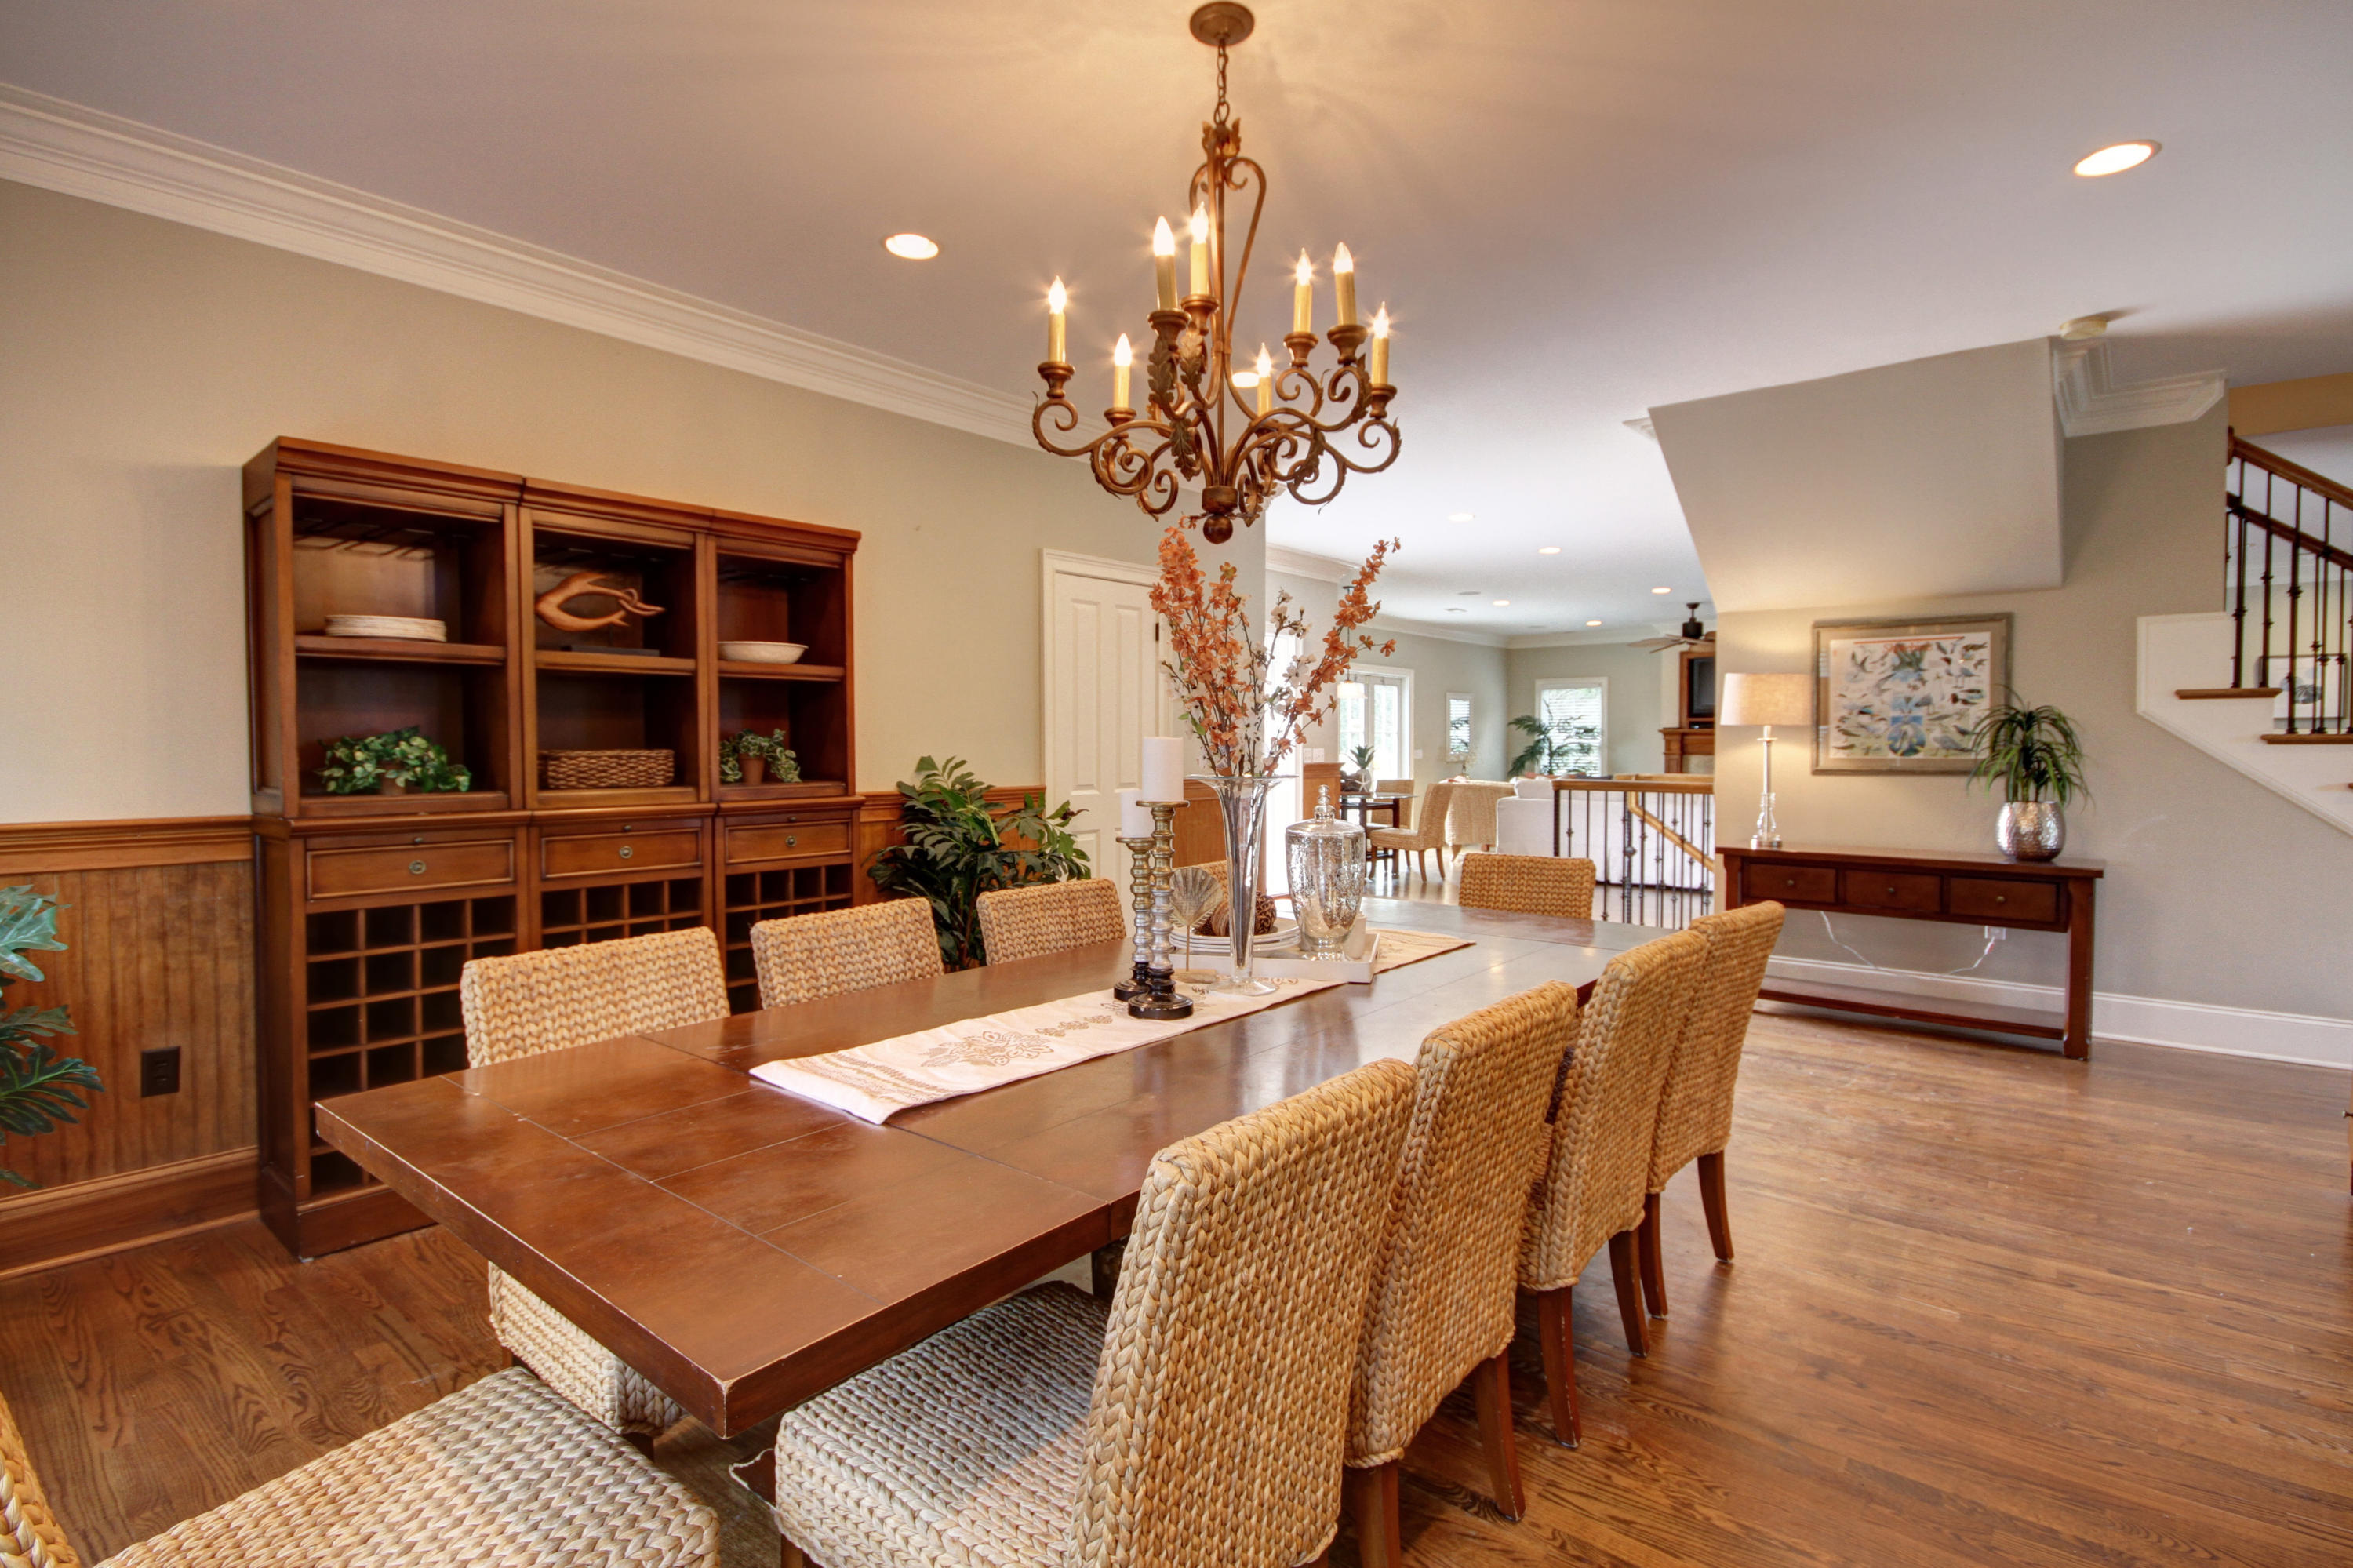 Wild Dunes Homes For Sale - 7 Abalone, Isle of Palms, SC - 0